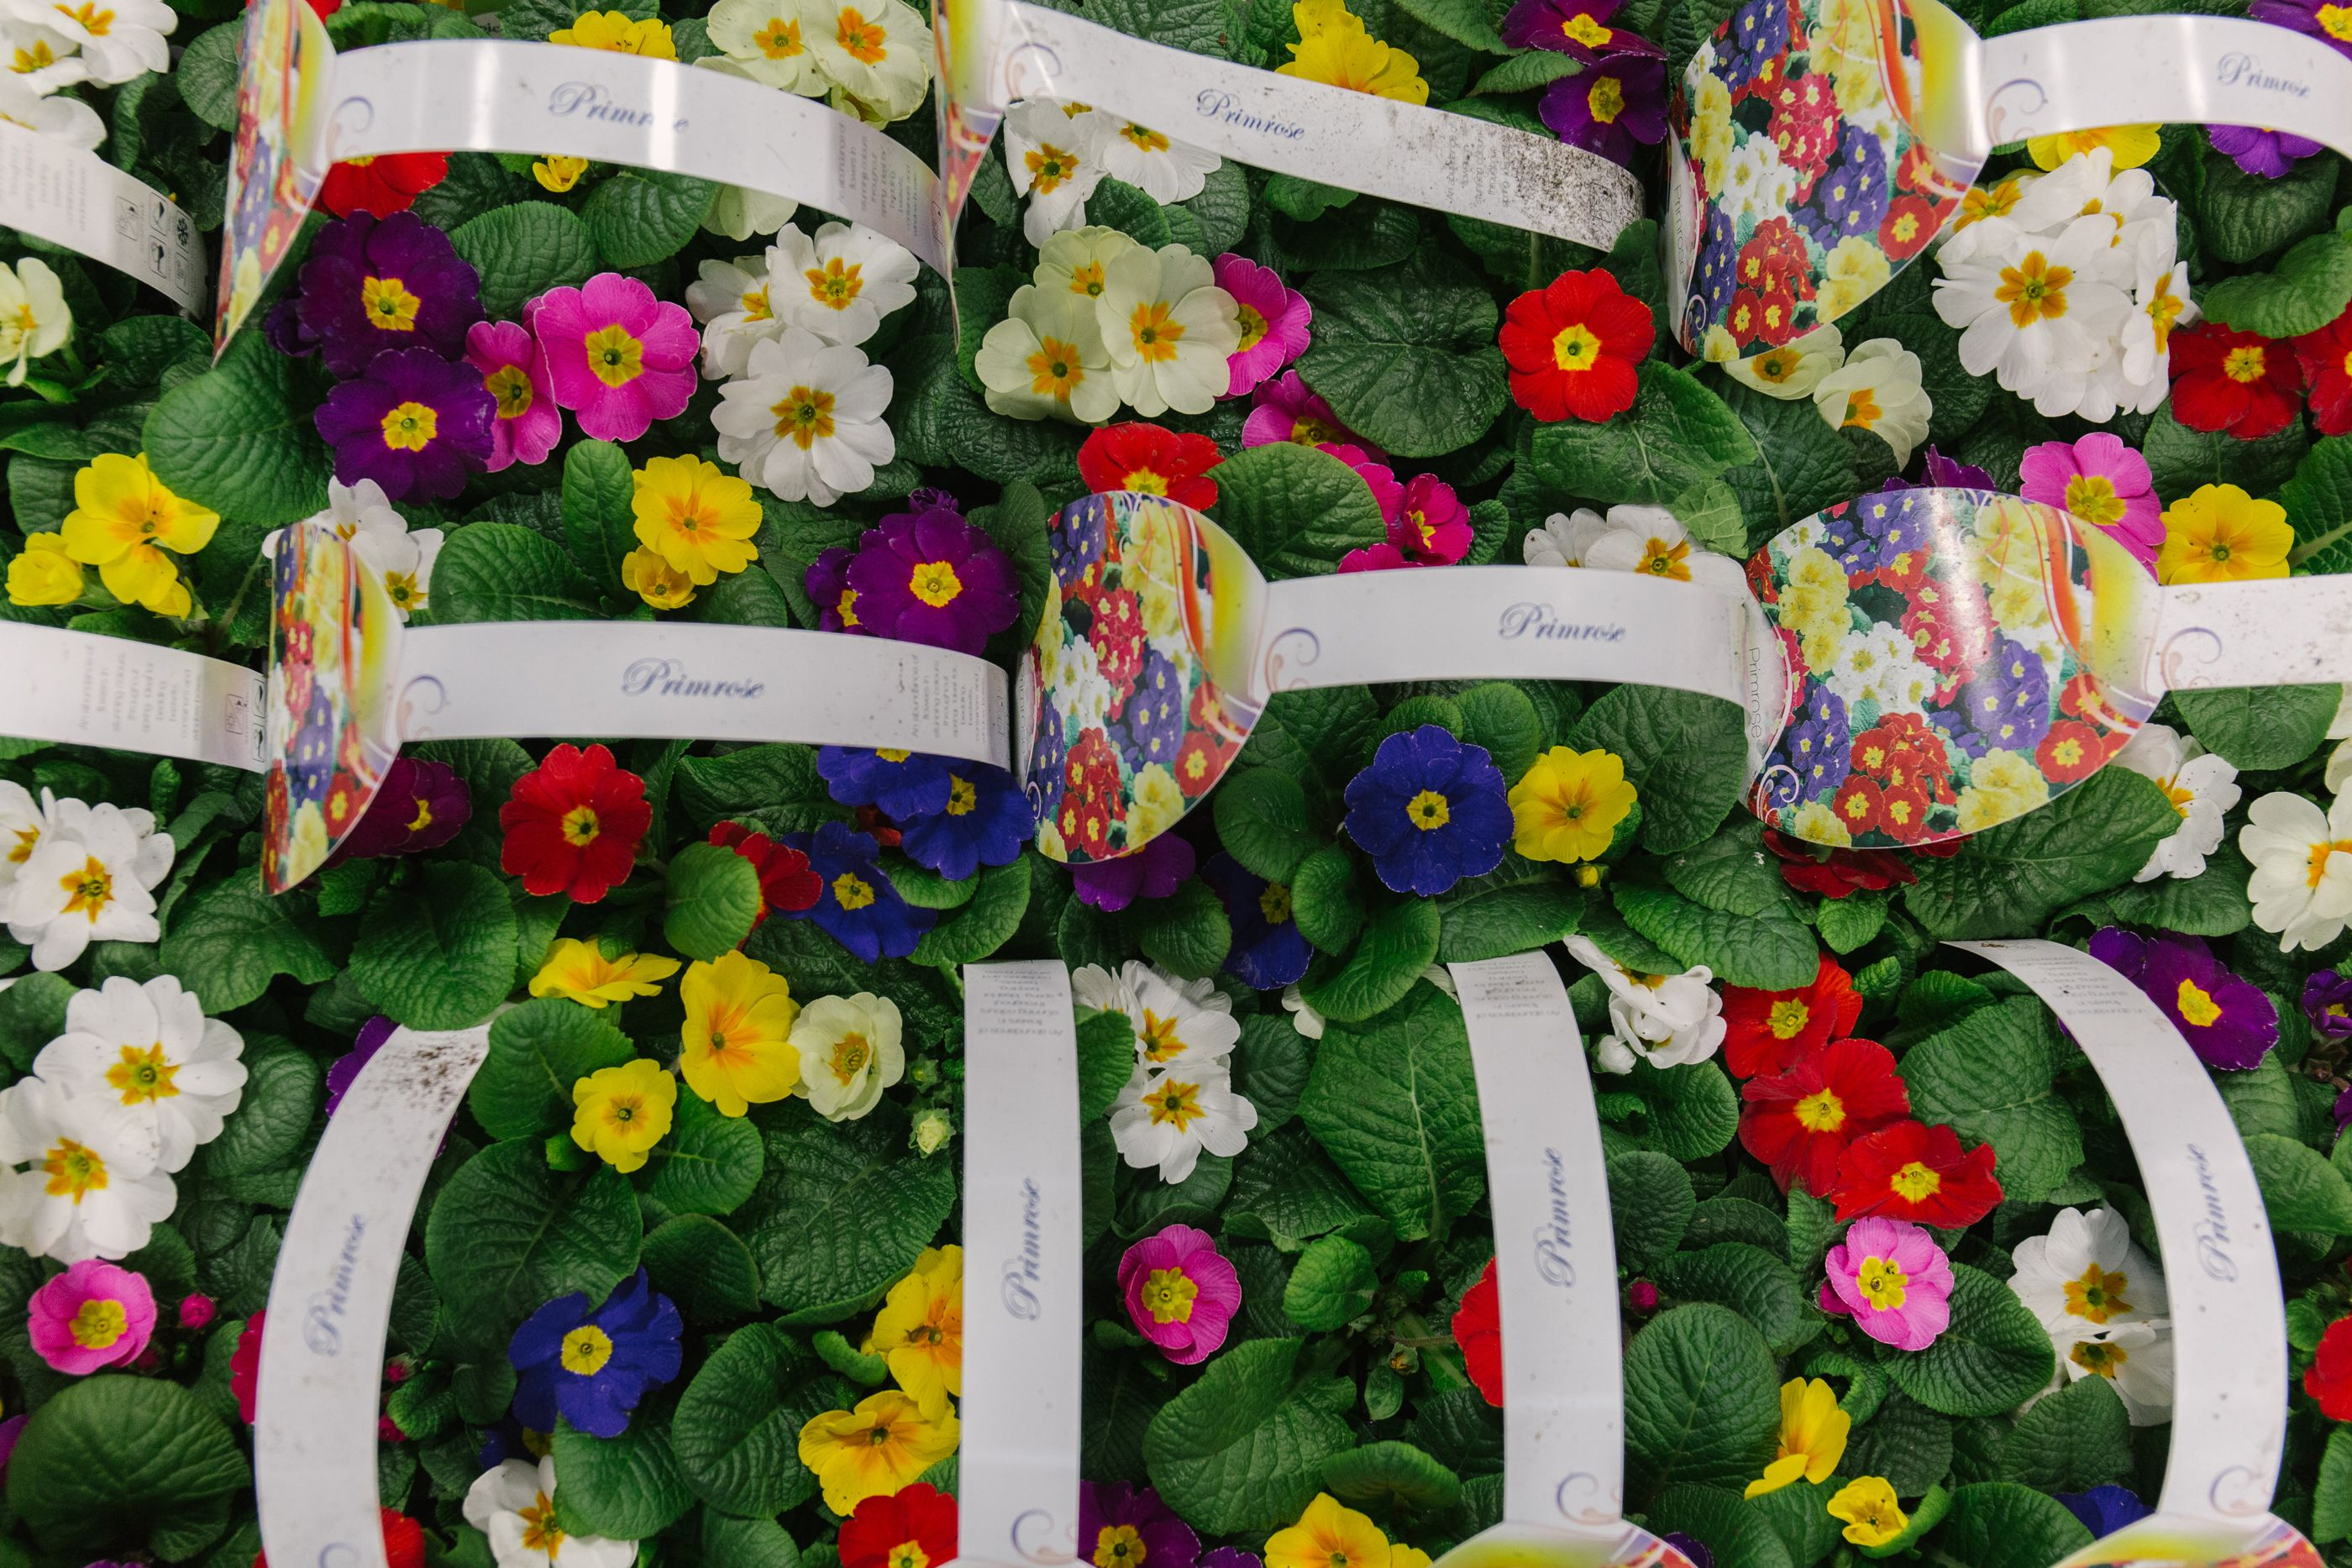 In season at the Flower Market this March New Covent